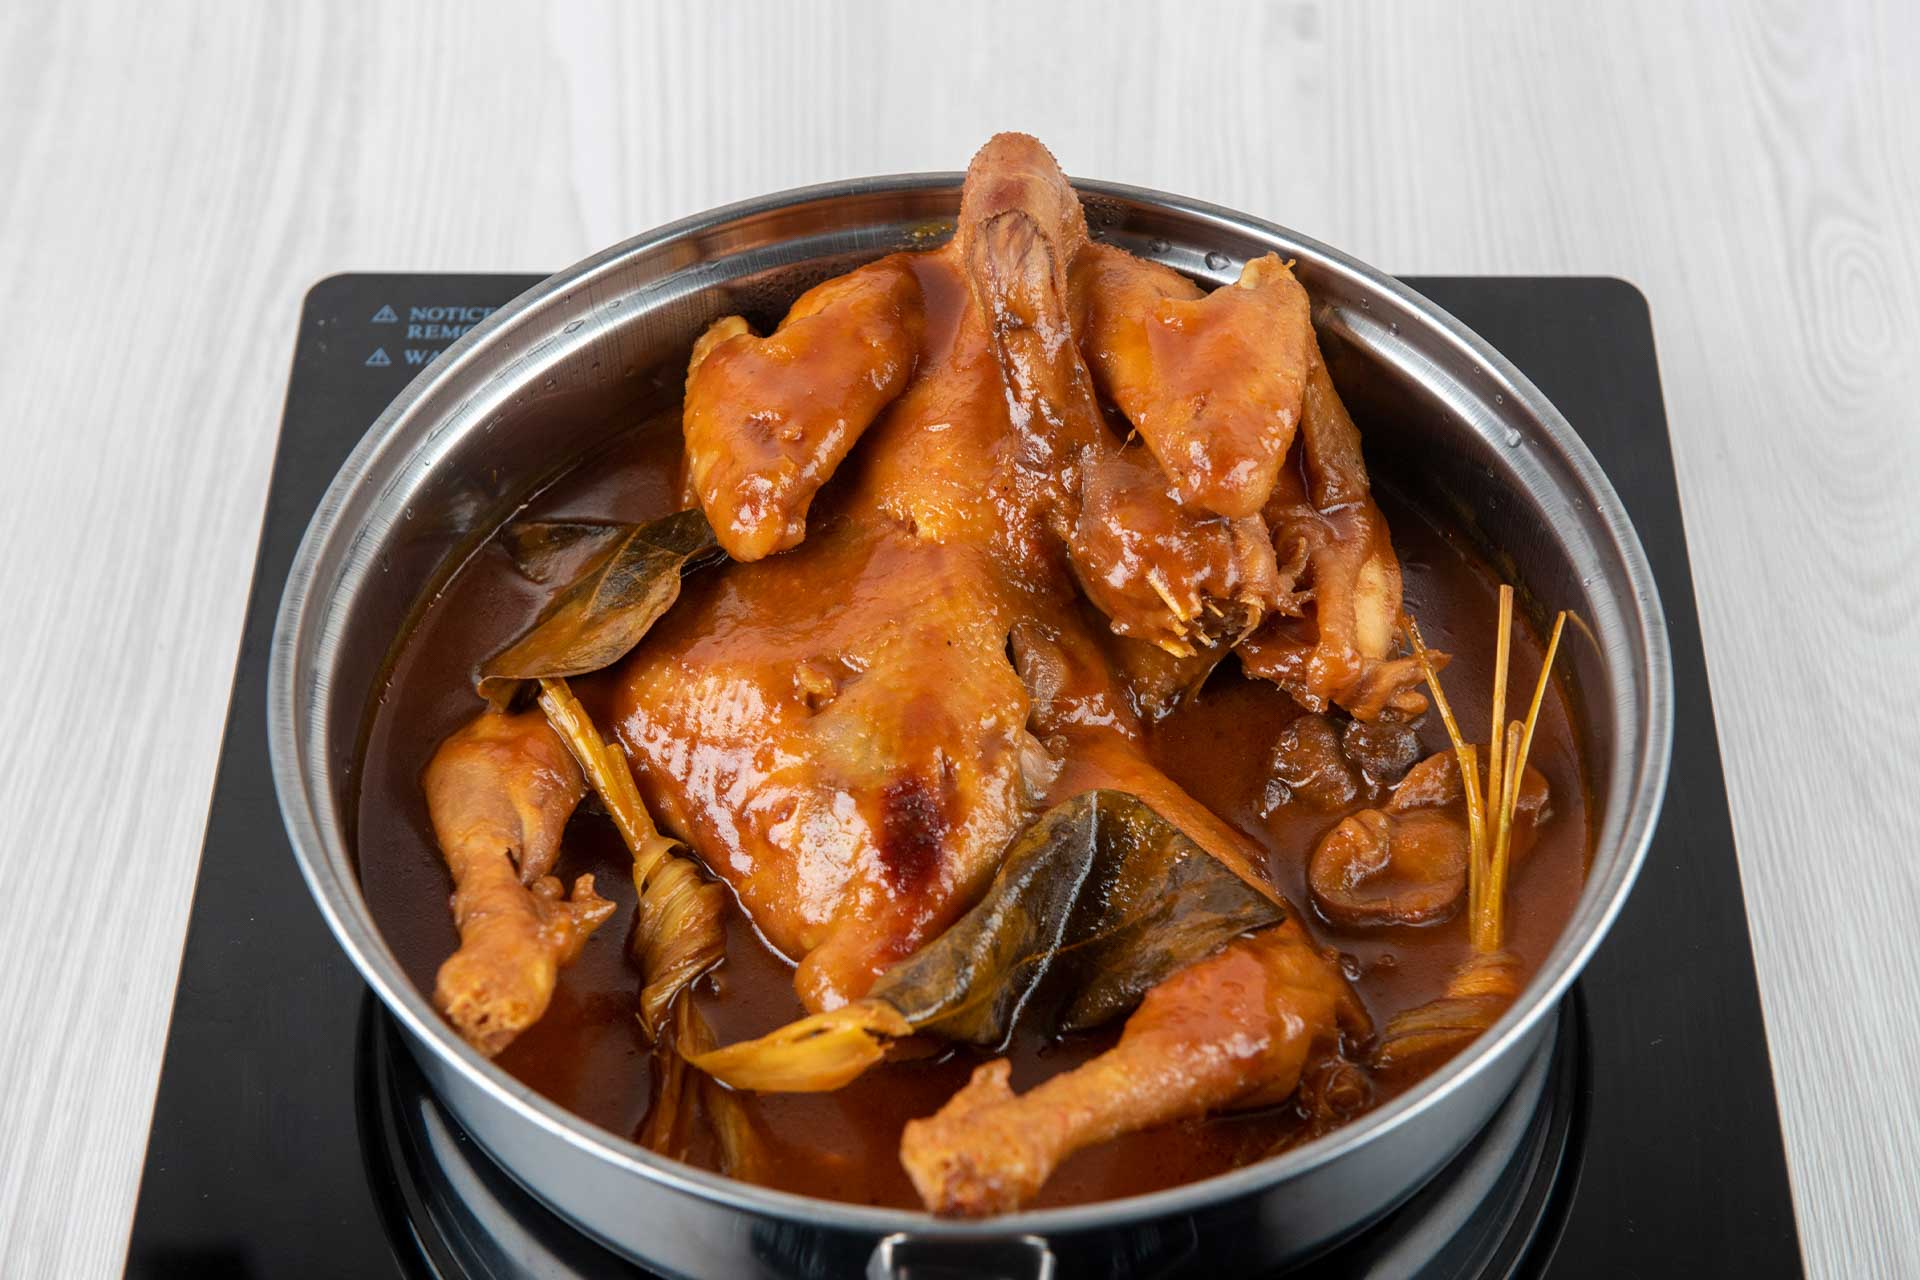 Cook the chicken in broth